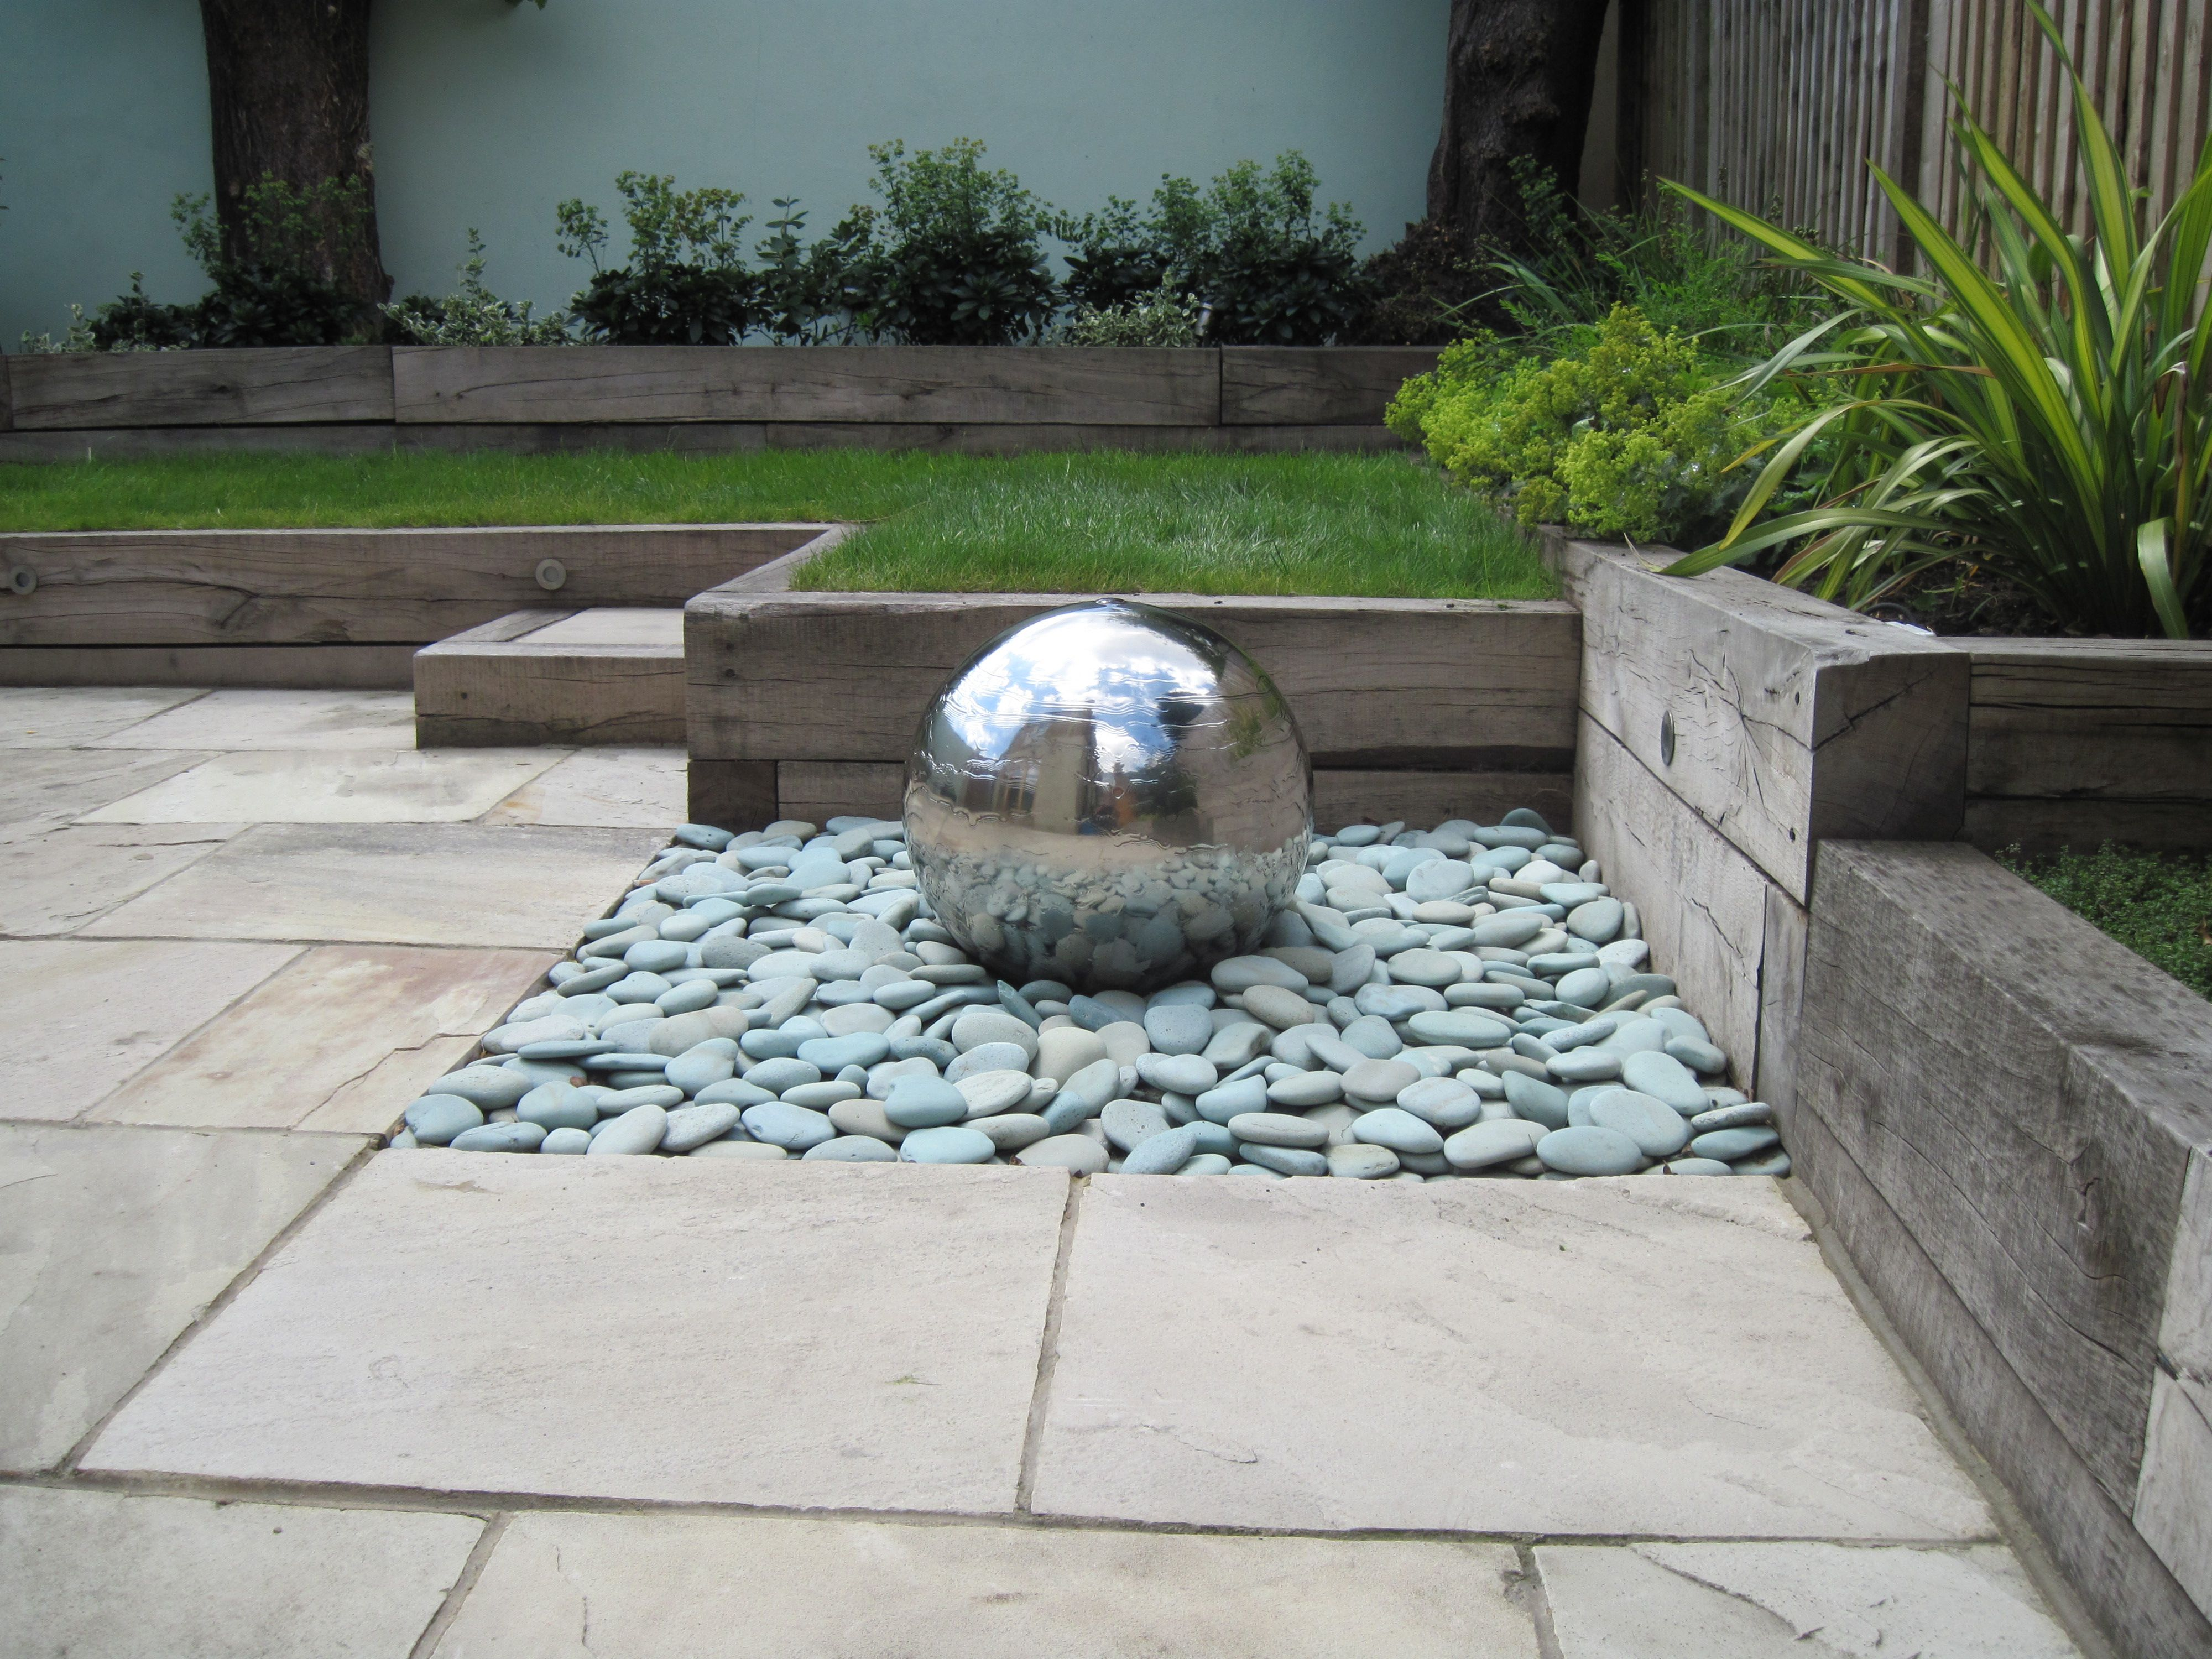 Just Love These Stainless Steel Water Features ...something Similar But On  A Bed. Minimalist GardenModern MinimalistGarden FountainsWater ...